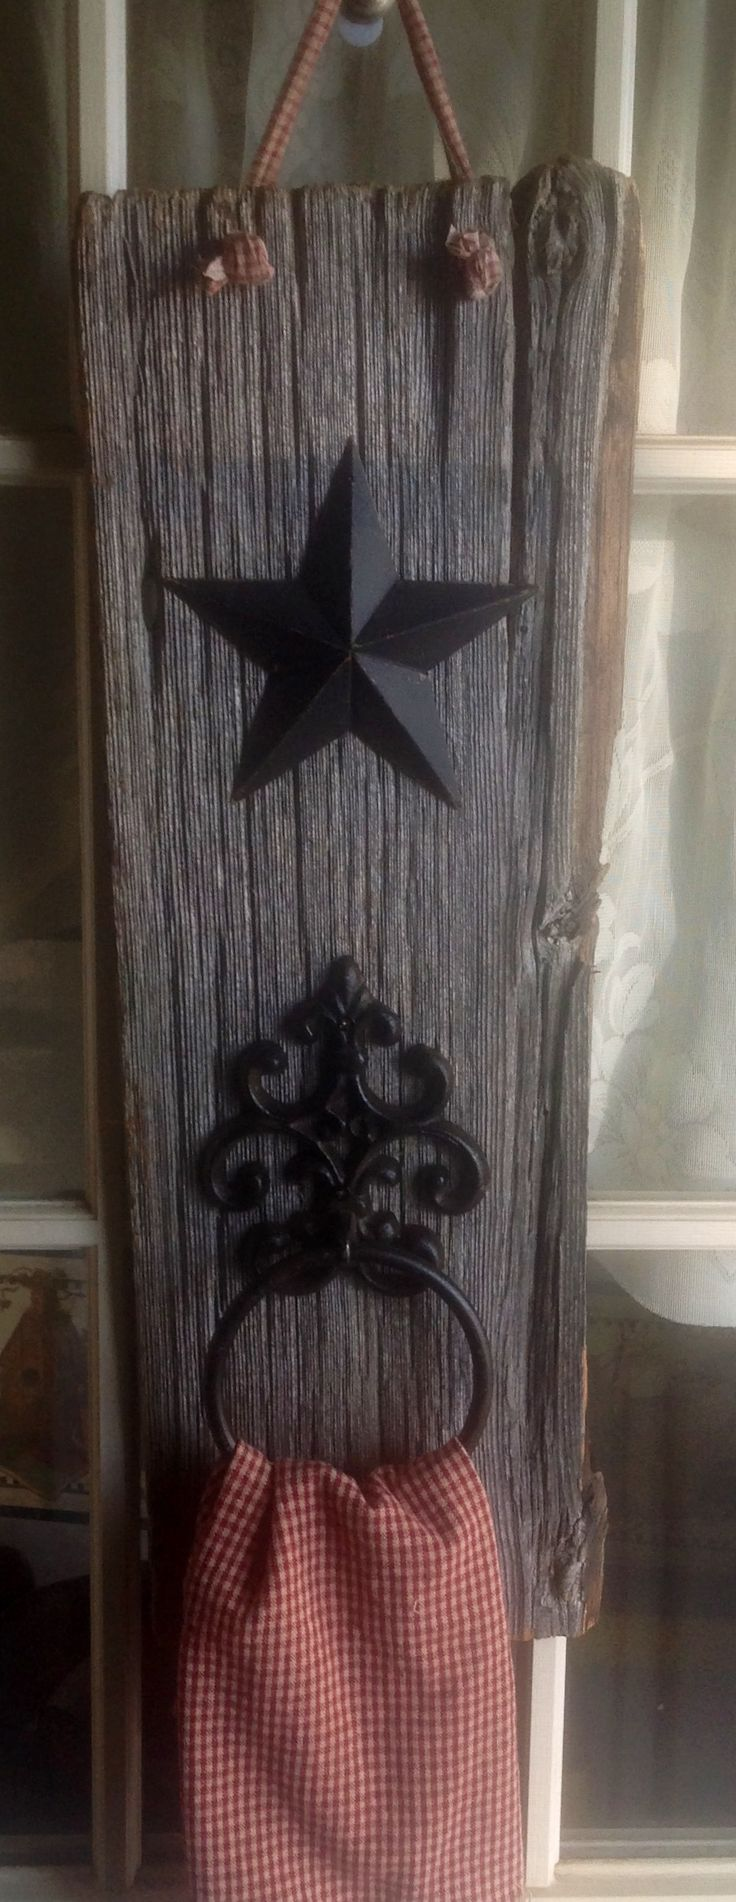 Barn wood towel holder. The Southern Living at Home towel holder would look… …